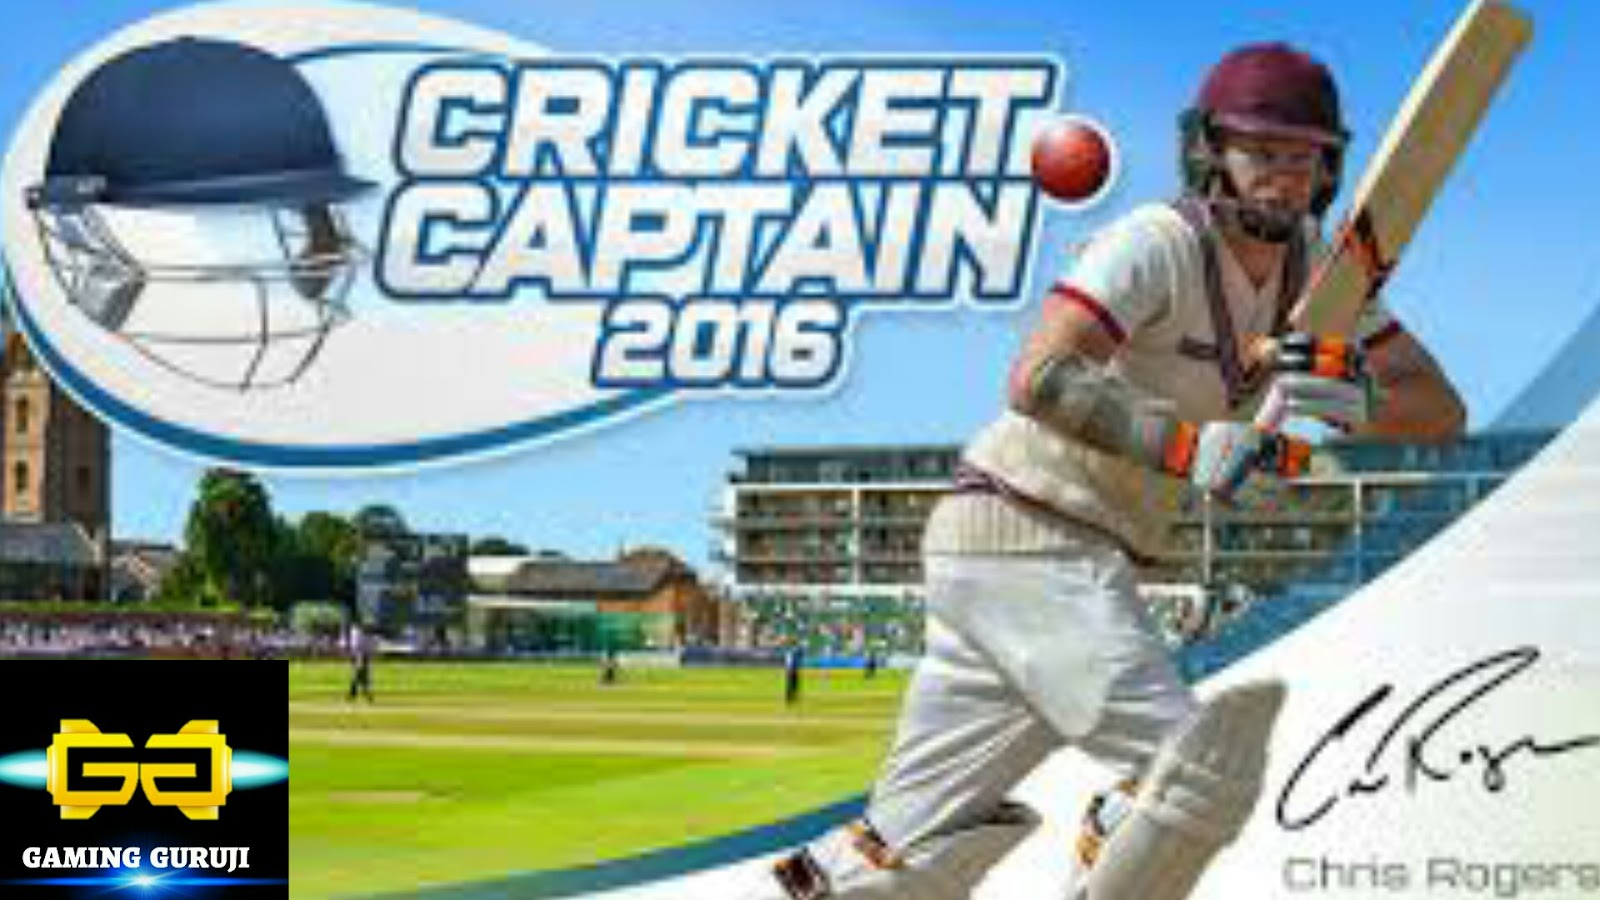 How to download cricket captain 2016 for free on Android or